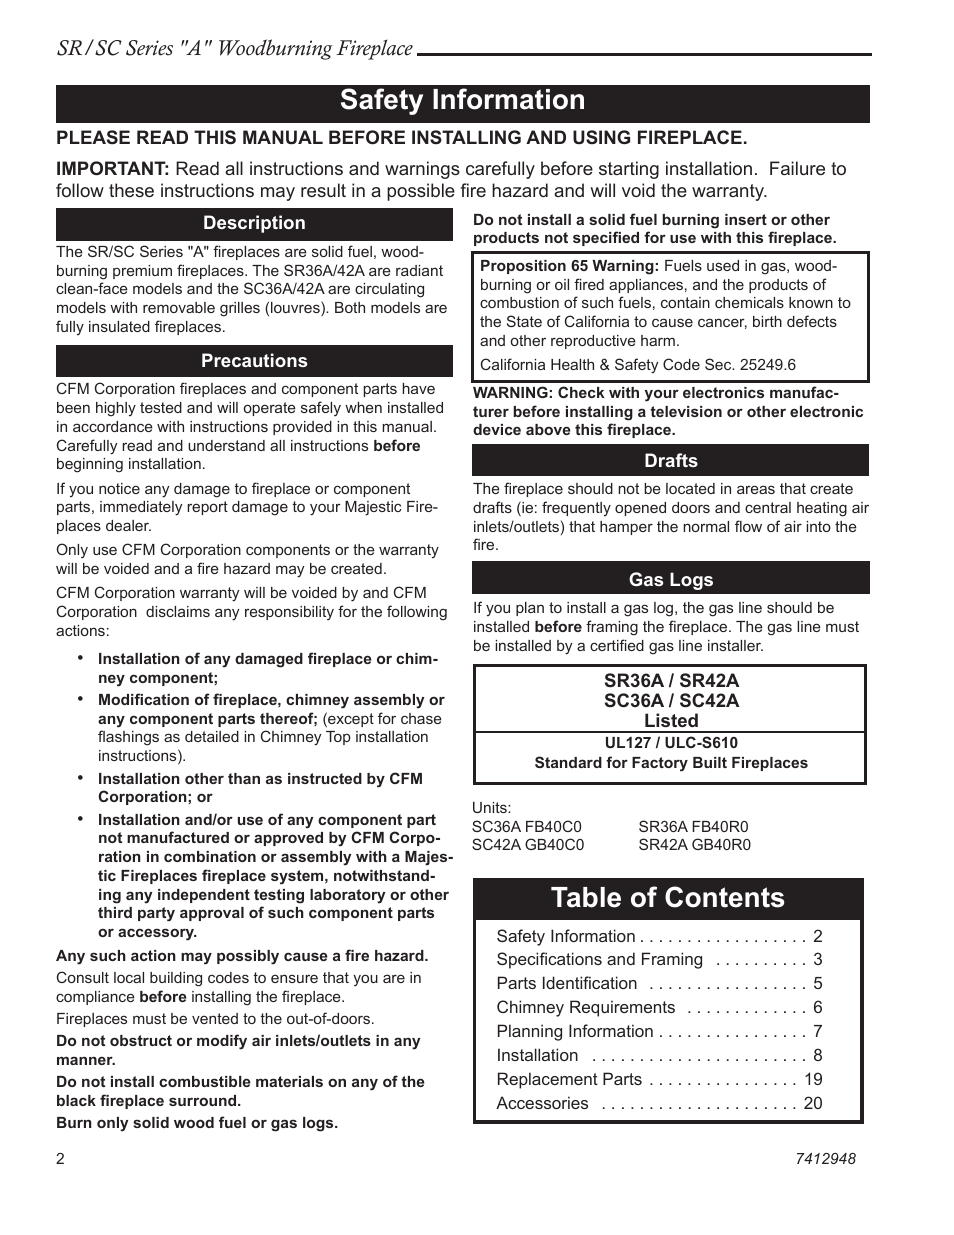 Vermont Casting SR42A User Manual | Page 2 / 24 | Also for: SC36A